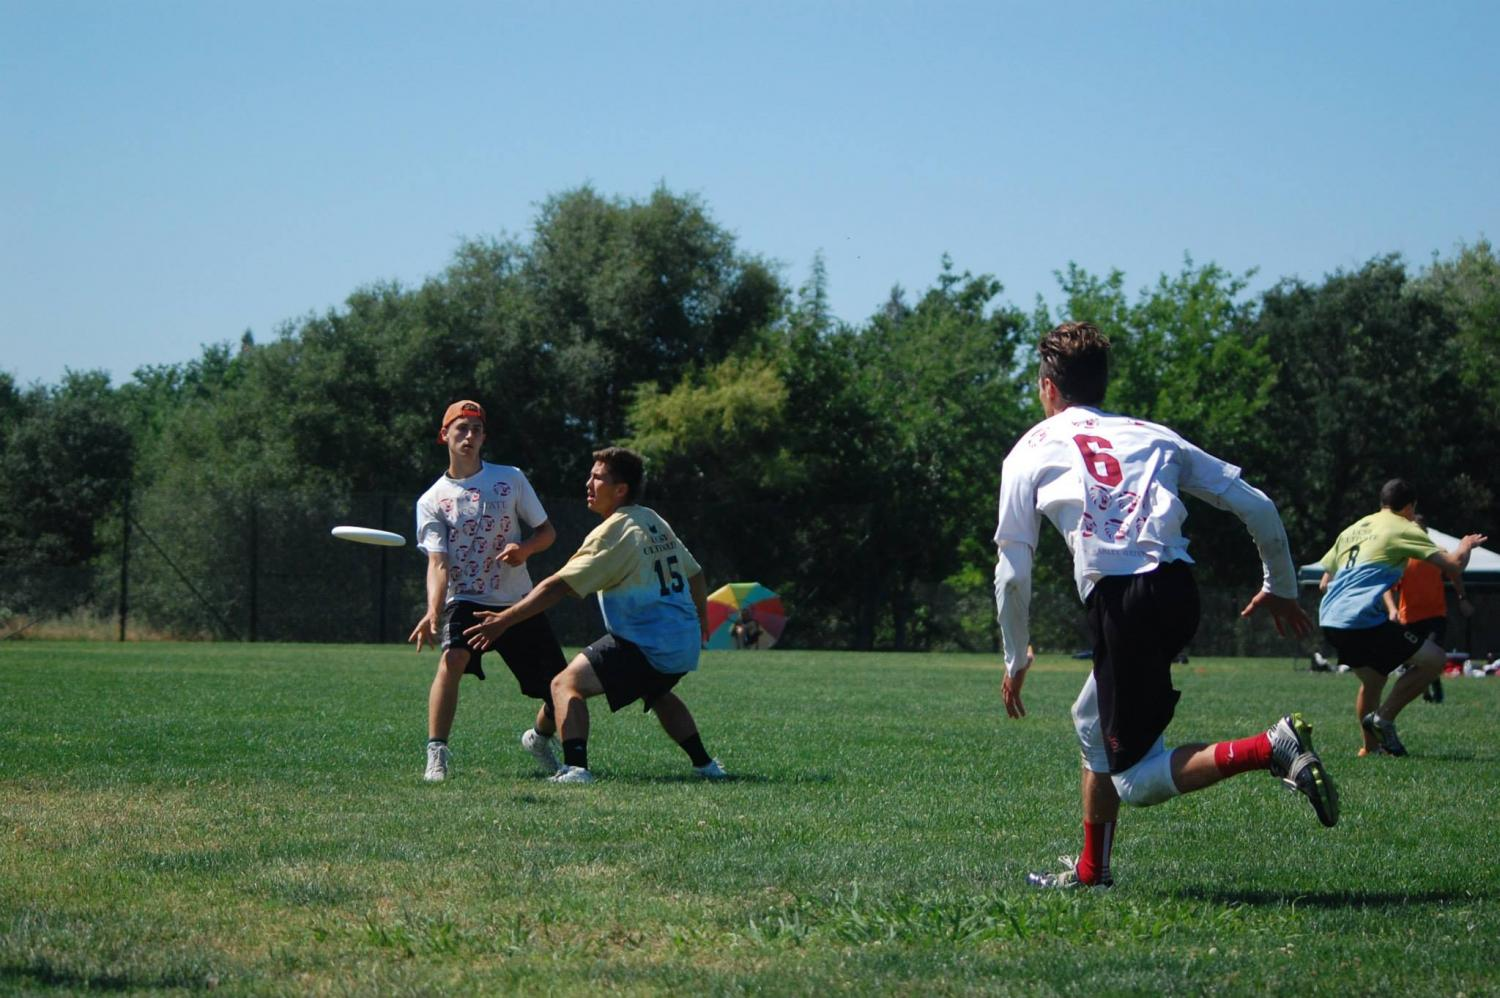 Chico State Frisbee team continues to develop